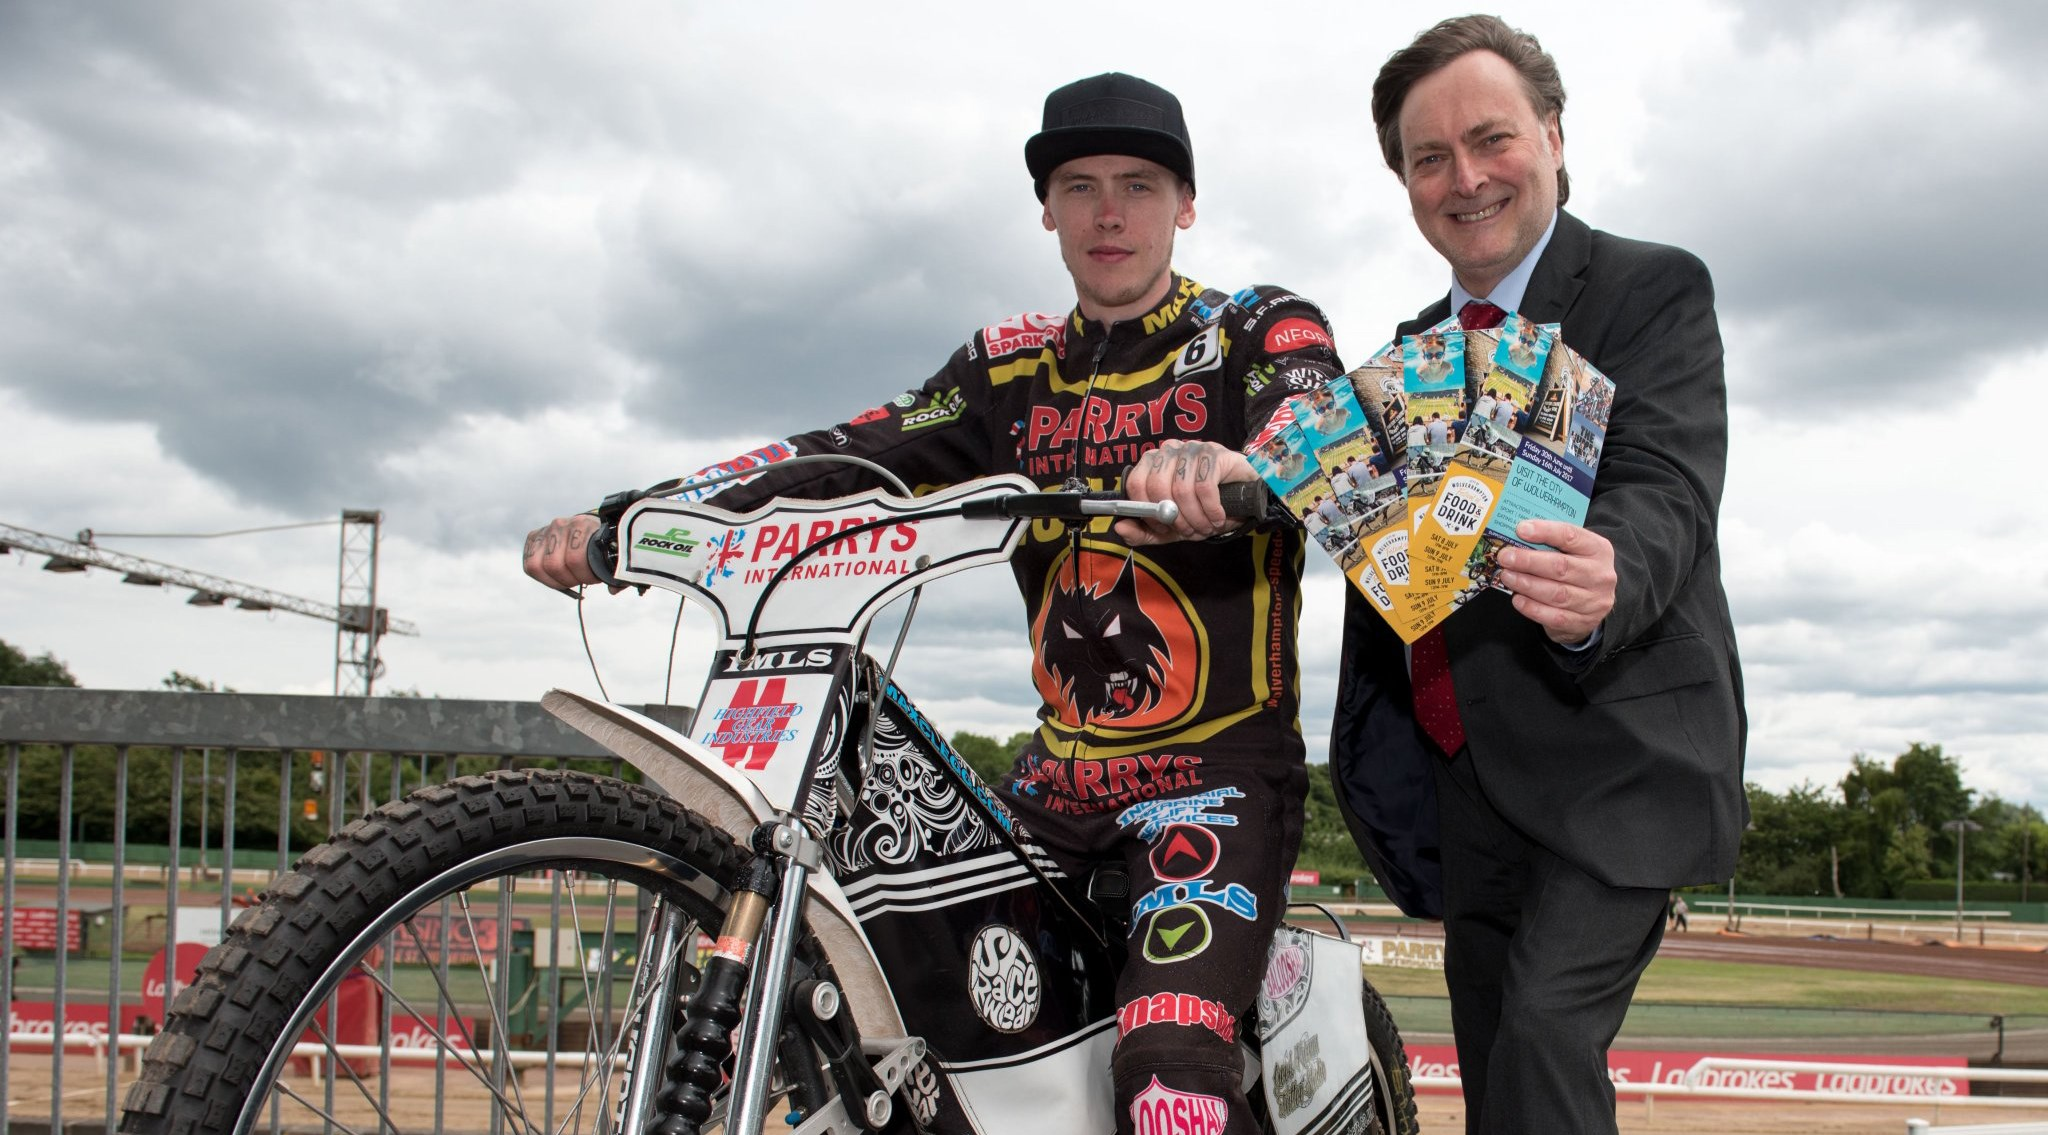 'Visit the City' programme revs up with Wolves speedway offer